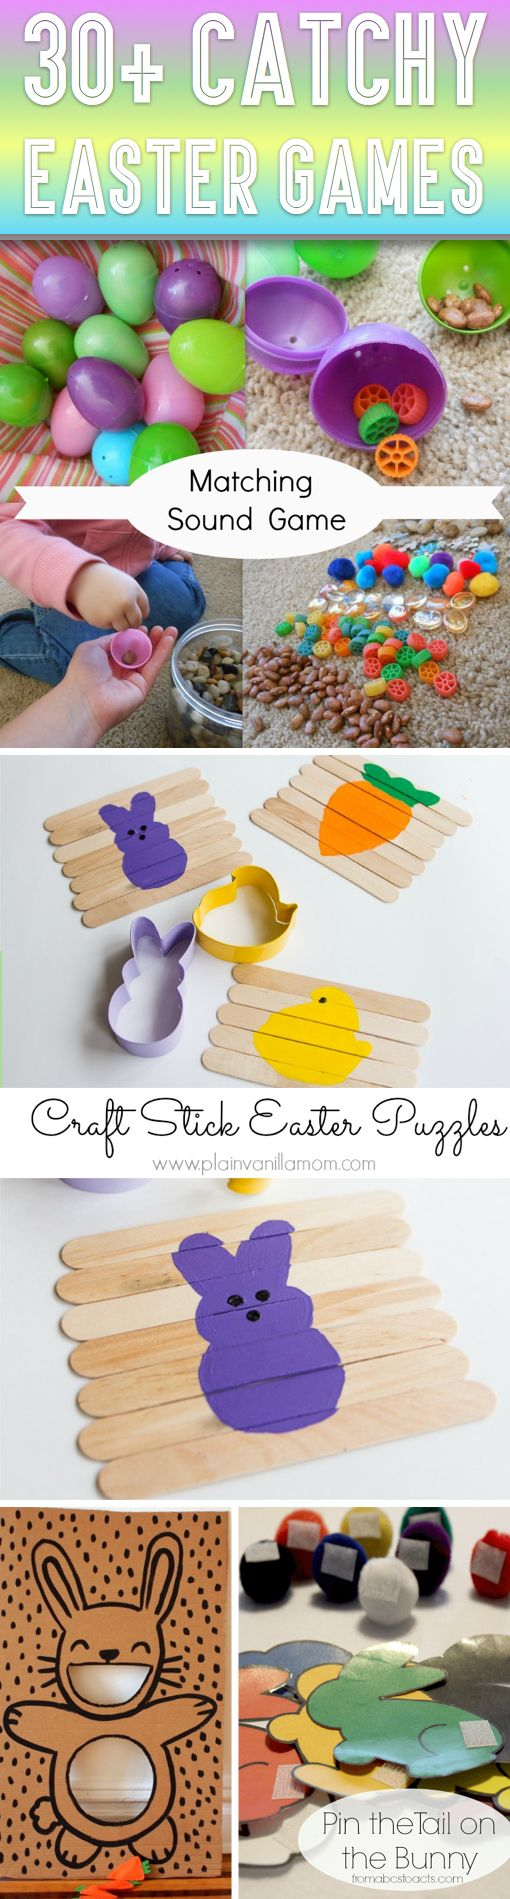 """30+ Catchy Easter Games To Try With Your Kids This Year! - Here you will find a compilation of 30 catchy, creative and entertaining Easter games that you must definitely put on your """"To Try"""" list!"""